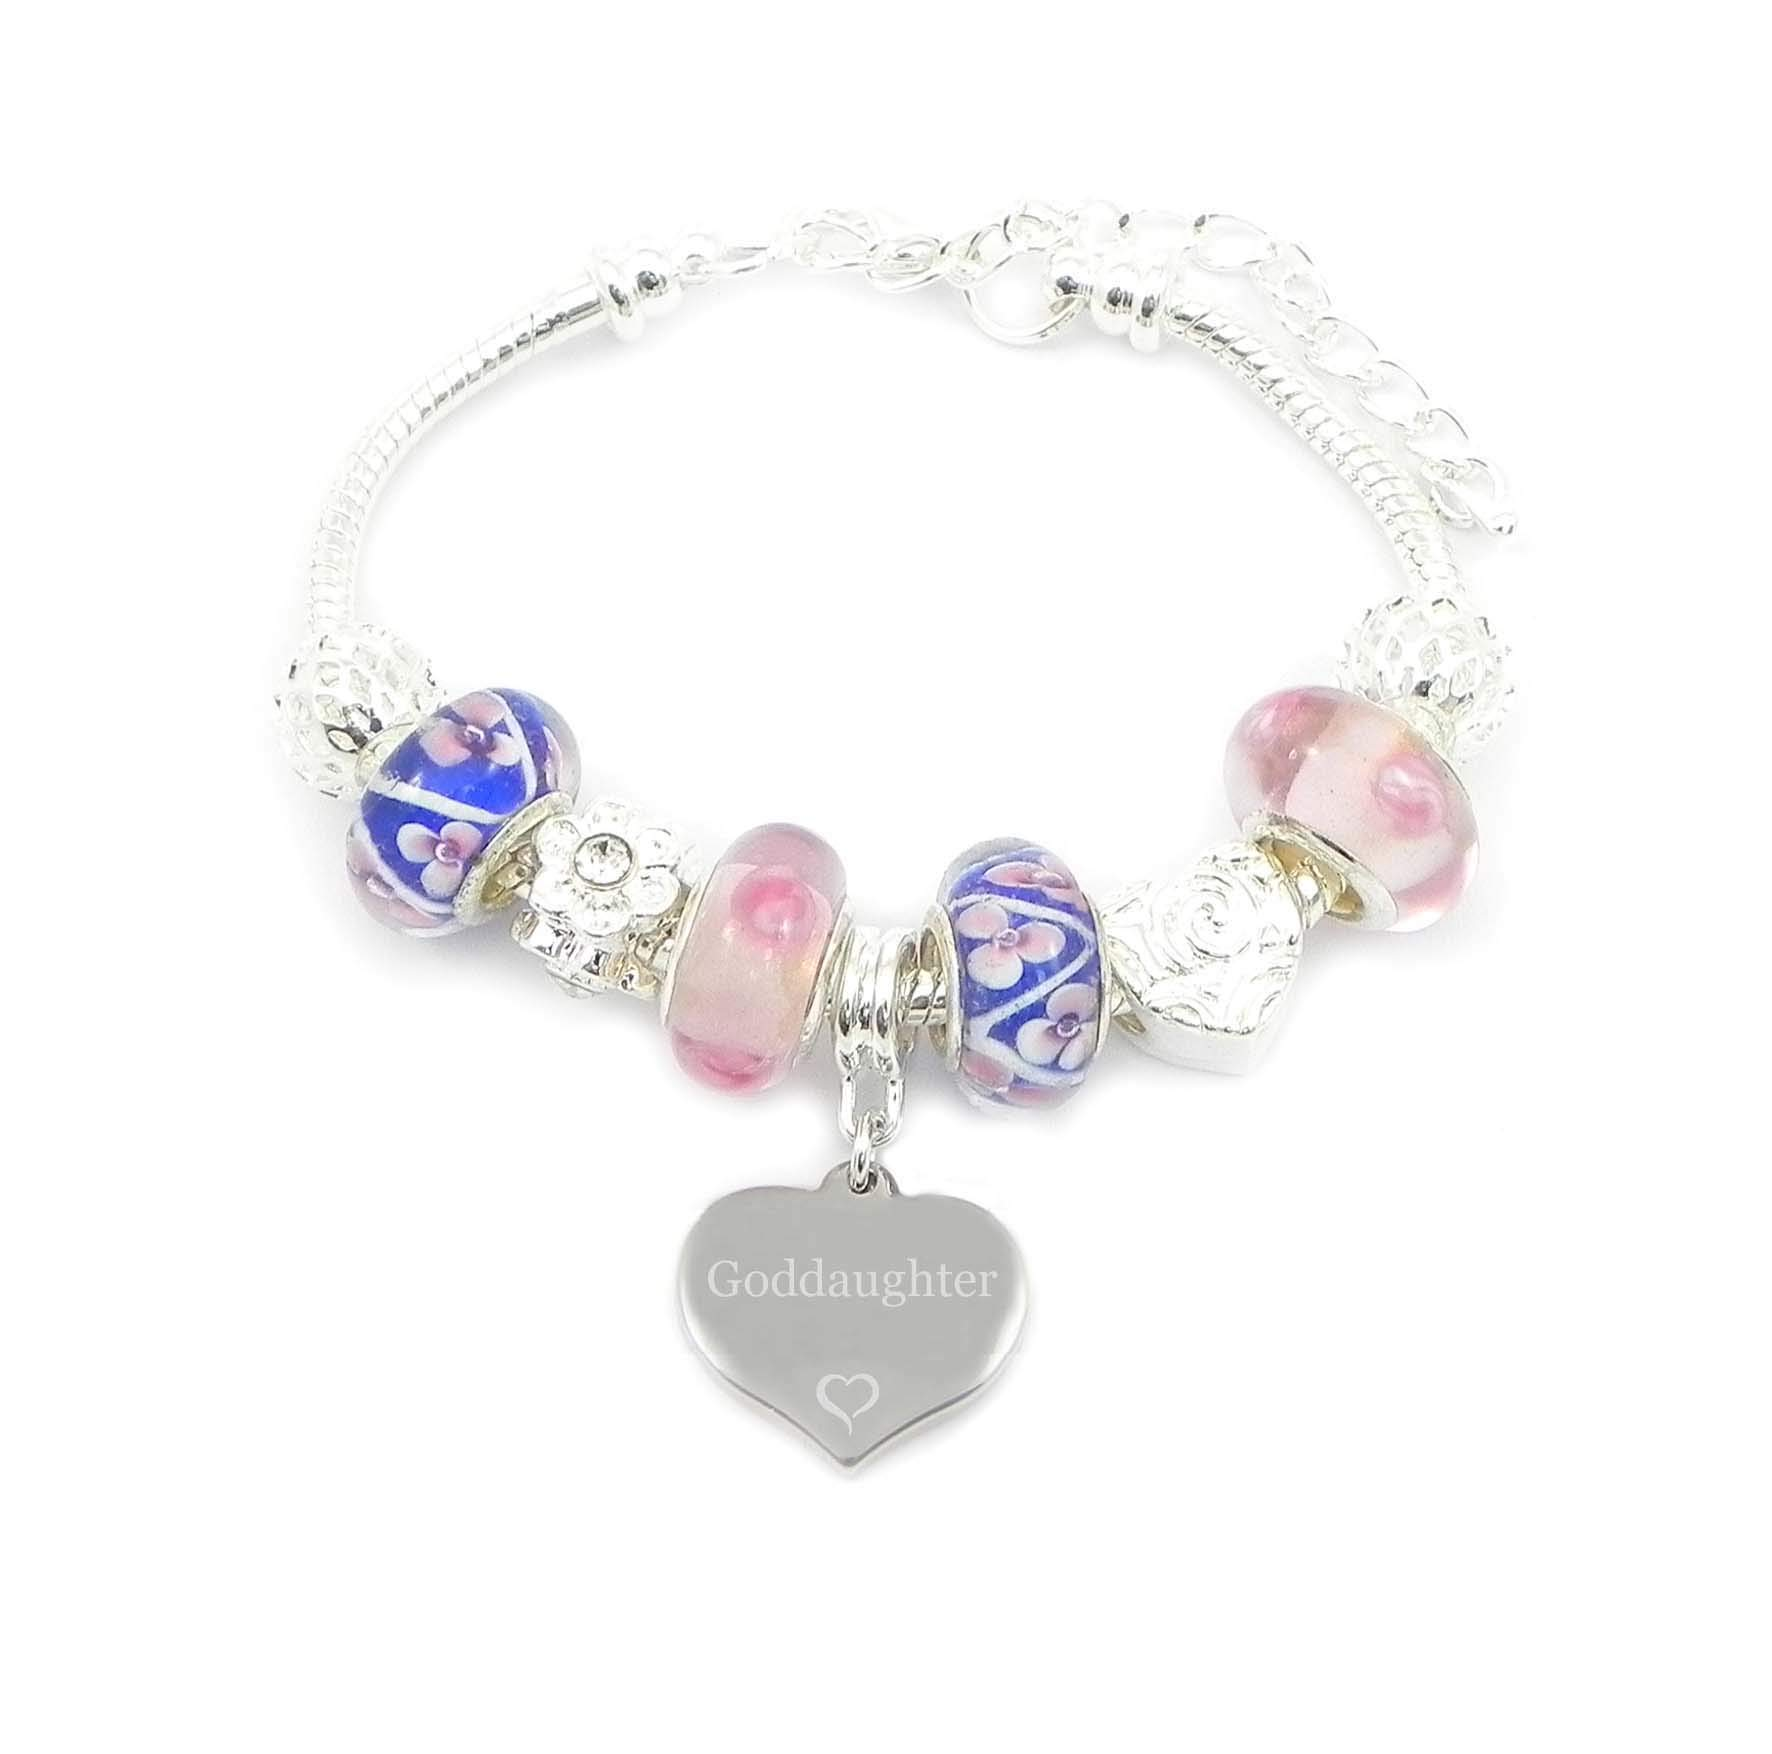 SanaBelle™ Goddaughter Engraved Personalised Pink & Blue Flowers Charm Bracelet – Gift Boxed